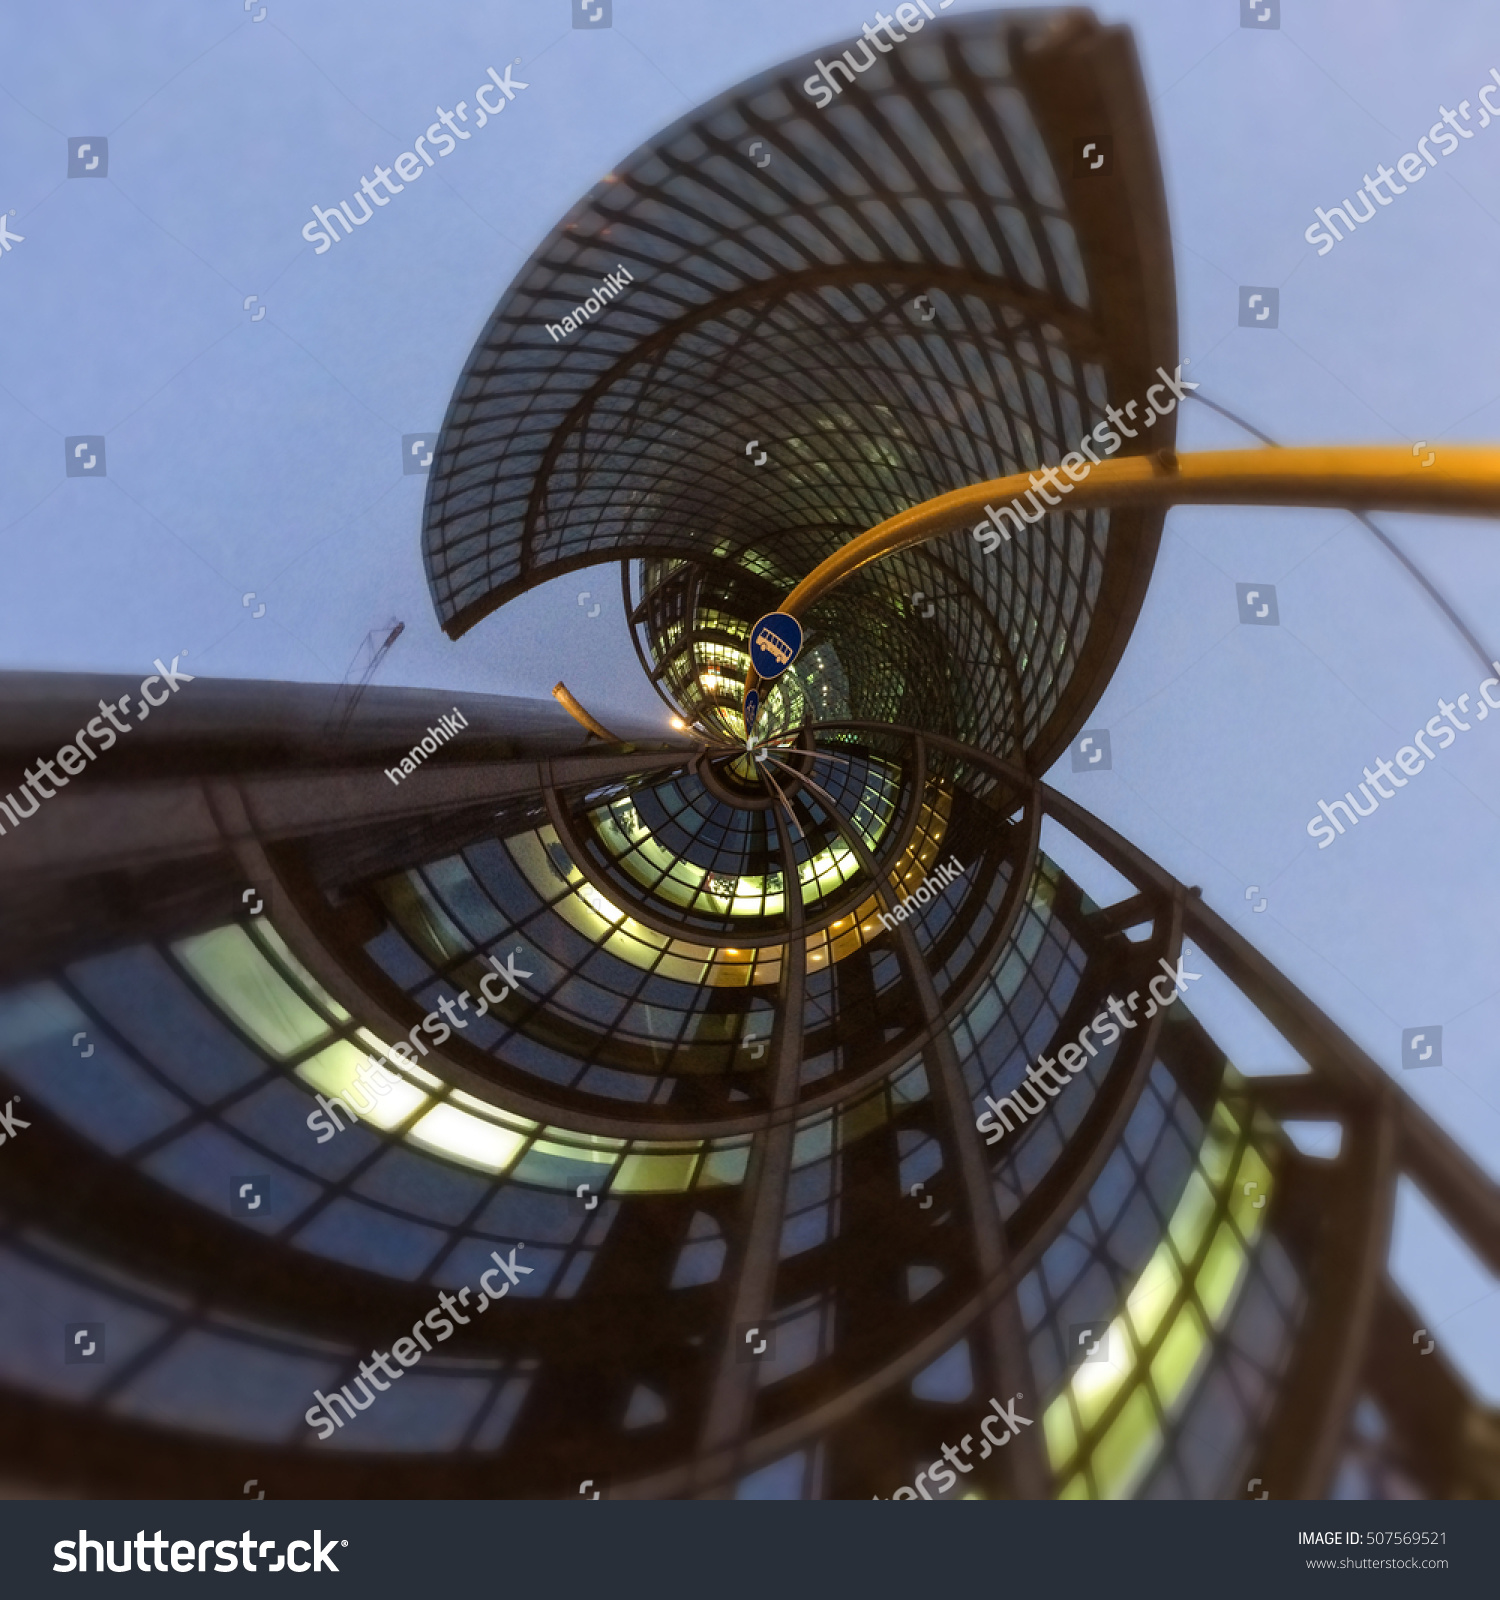 Modern Architecture Concept: Modern Architecture Concept Abstract Fisheye Lens Stock